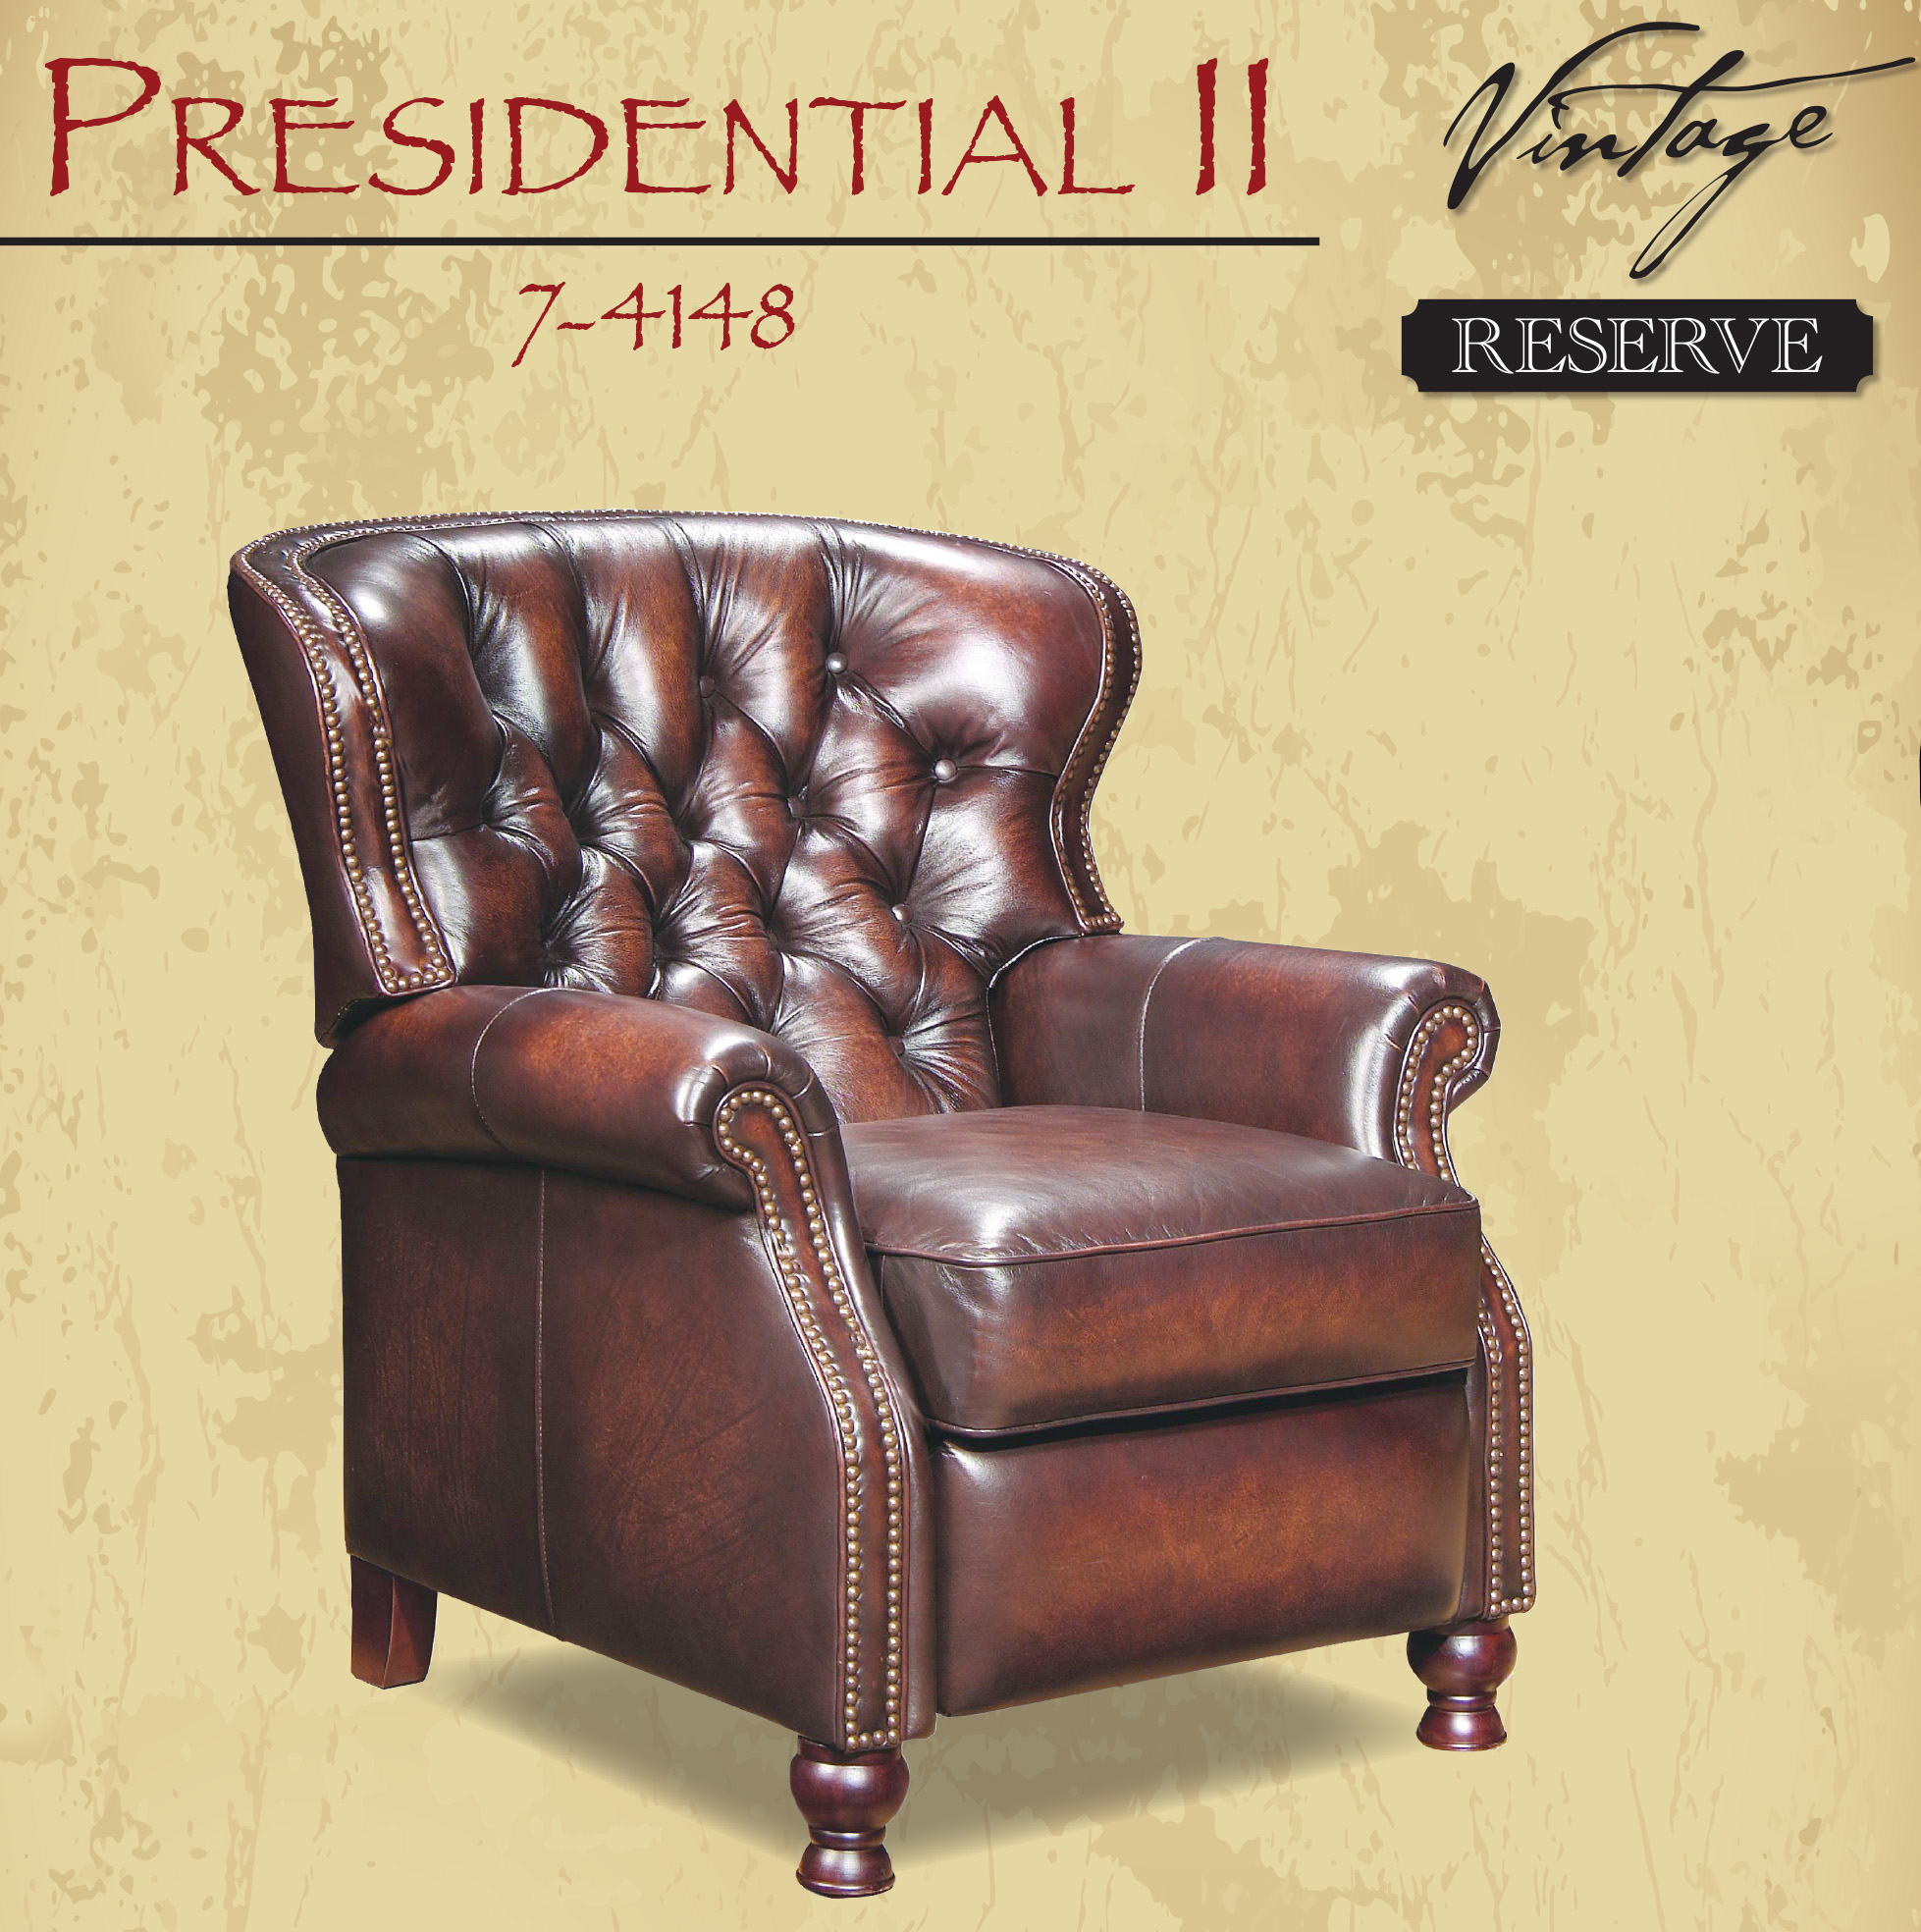 Barcalounger Presidential II Recliner Stetson Coffee Leather Chair  sc 1 st  Vitalitywebb.com & Barcalounger Presidential II Leather Recliner Chair - Leather ... islam-shia.org